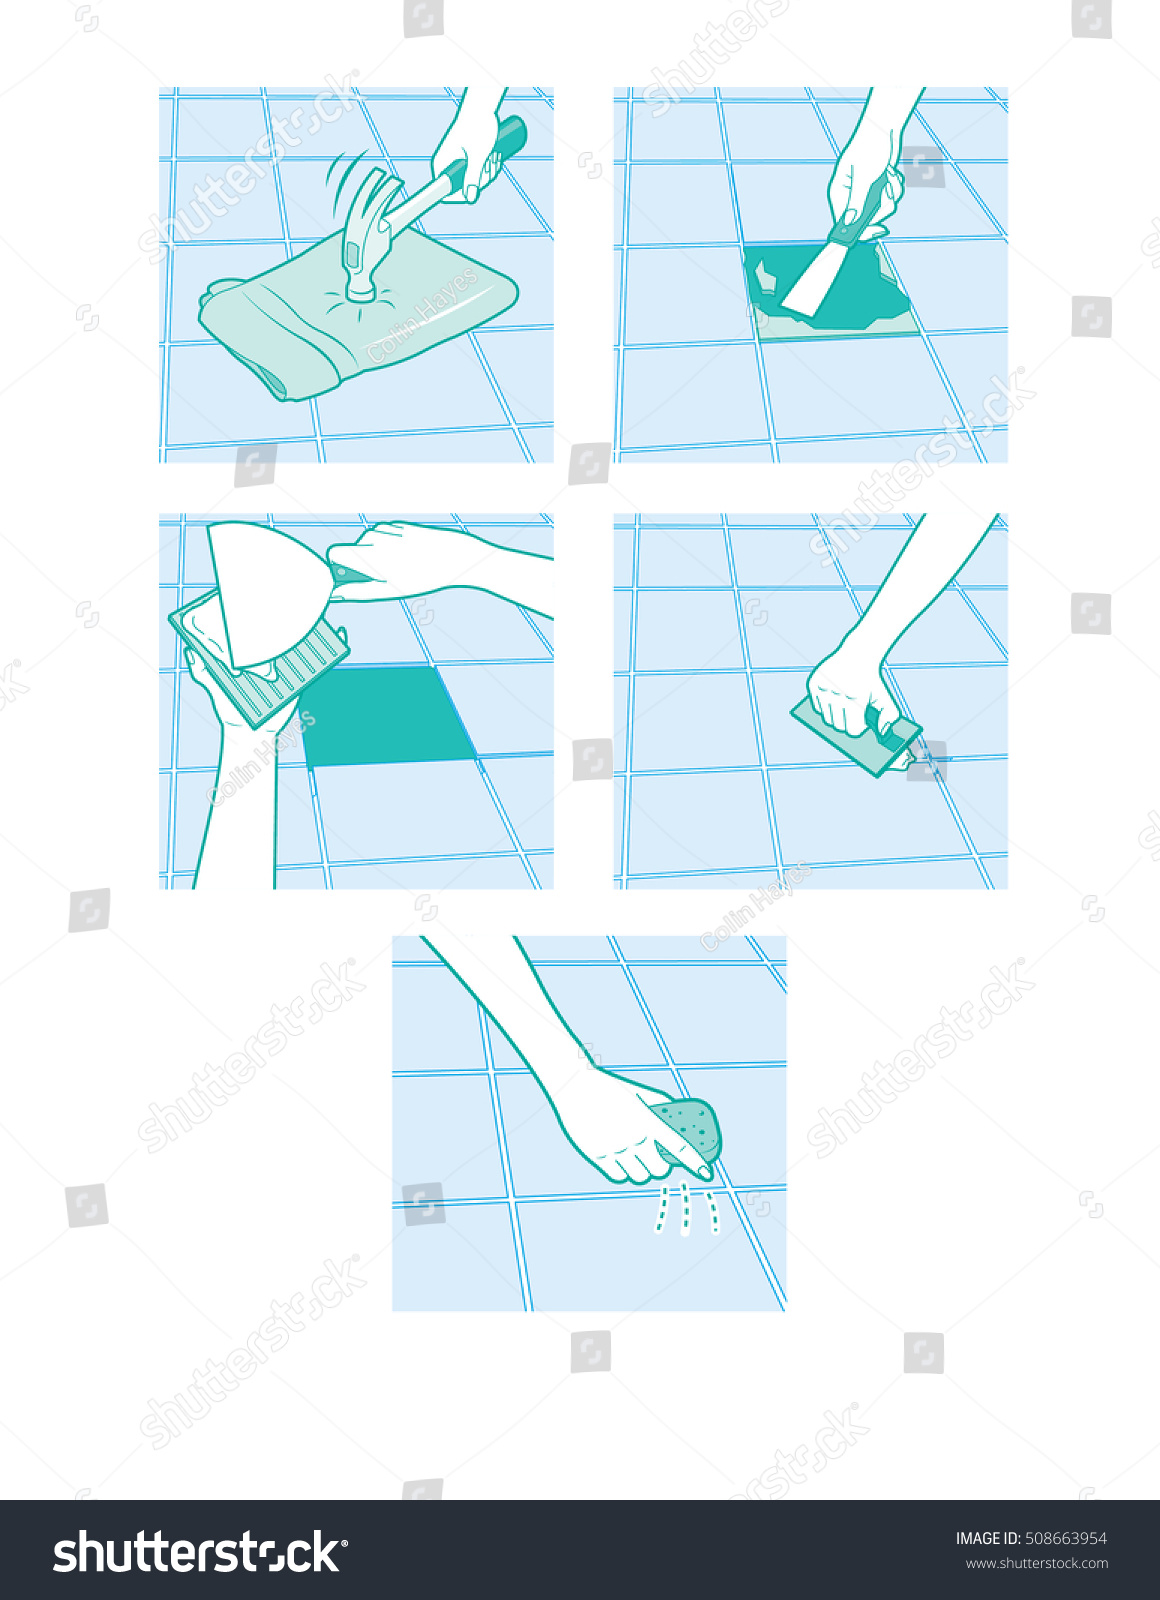 Replace broken floor tile images home flooring design how replace broken floor tile stock vector 508663954 shutterstock how to replace a broken floor tile dailygadgetfo Images